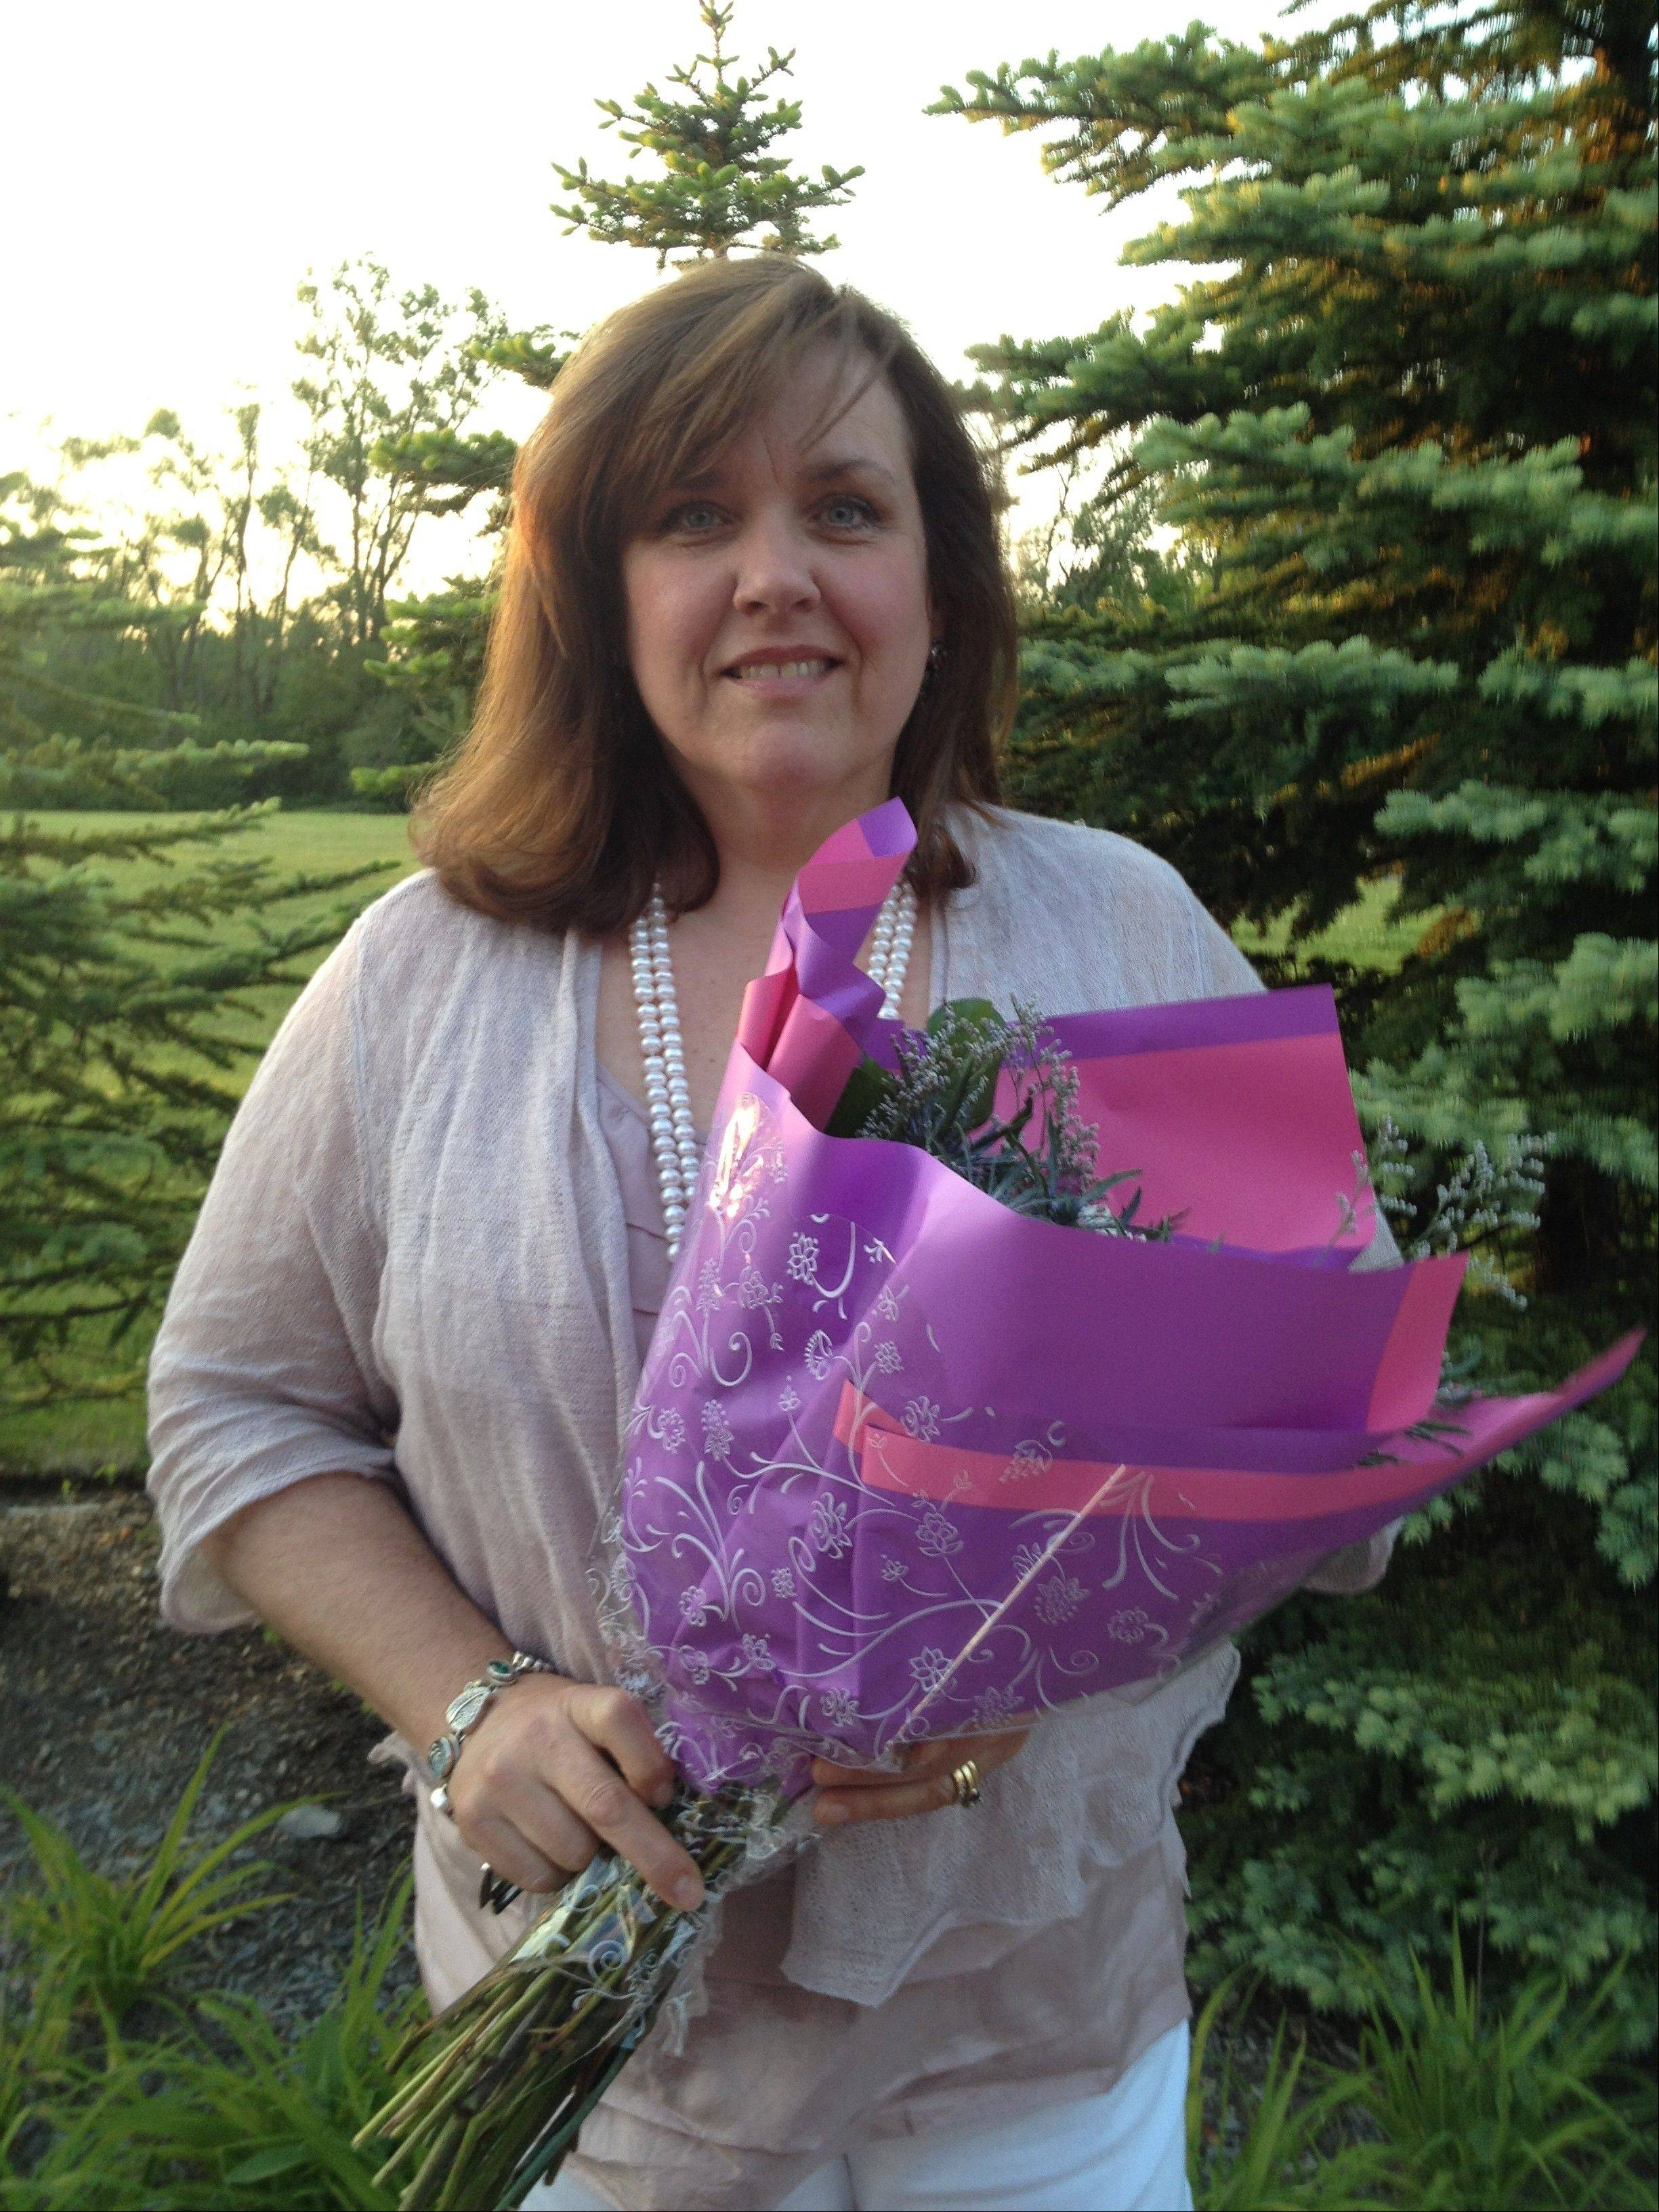 Susan Hurley received Fremont School District 79's Excellence in Volunteering Award.